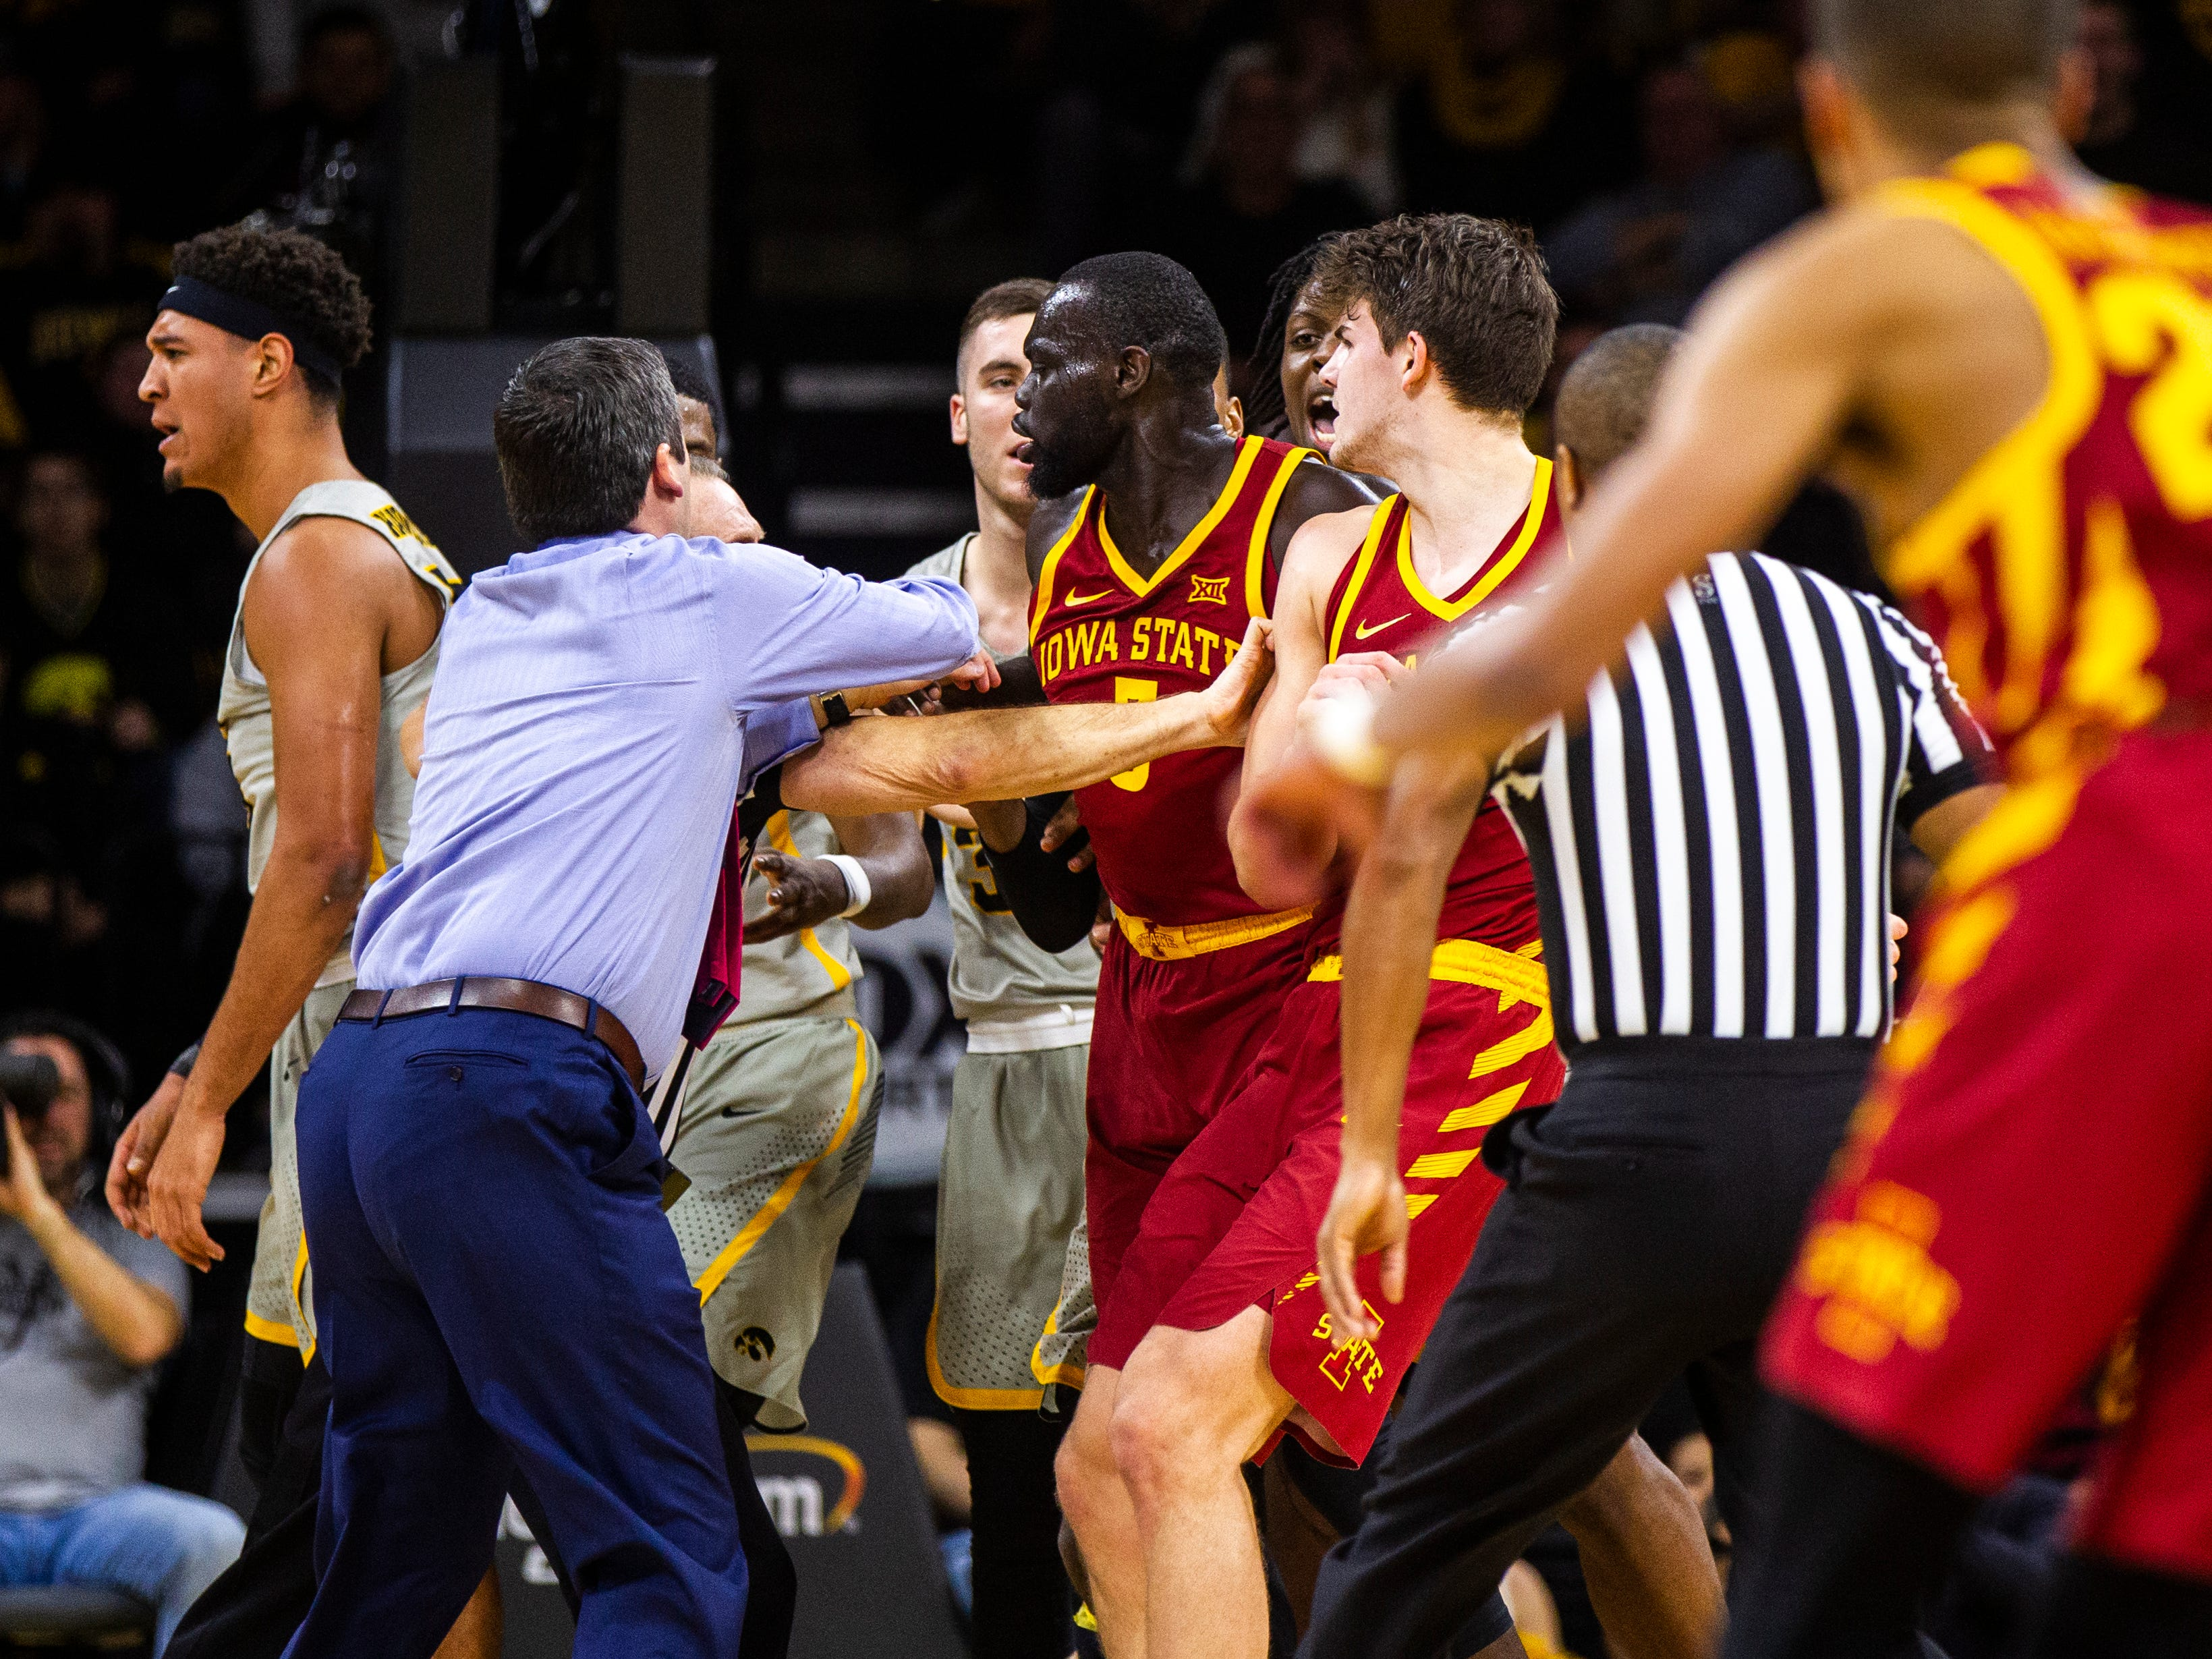 Iowa State head coach Steve Prohm and an official separate Iowa forward Cordell Pemsl (35) from Iowa State guard Marial Shayok (3) and Iowa State forward Michael Jacobson (12) during a NCAA Cy-Hawk series men's basketball game on Thursday, Dec. 6, 2018, at Carver-Hawkeye Arena in Iowa City.